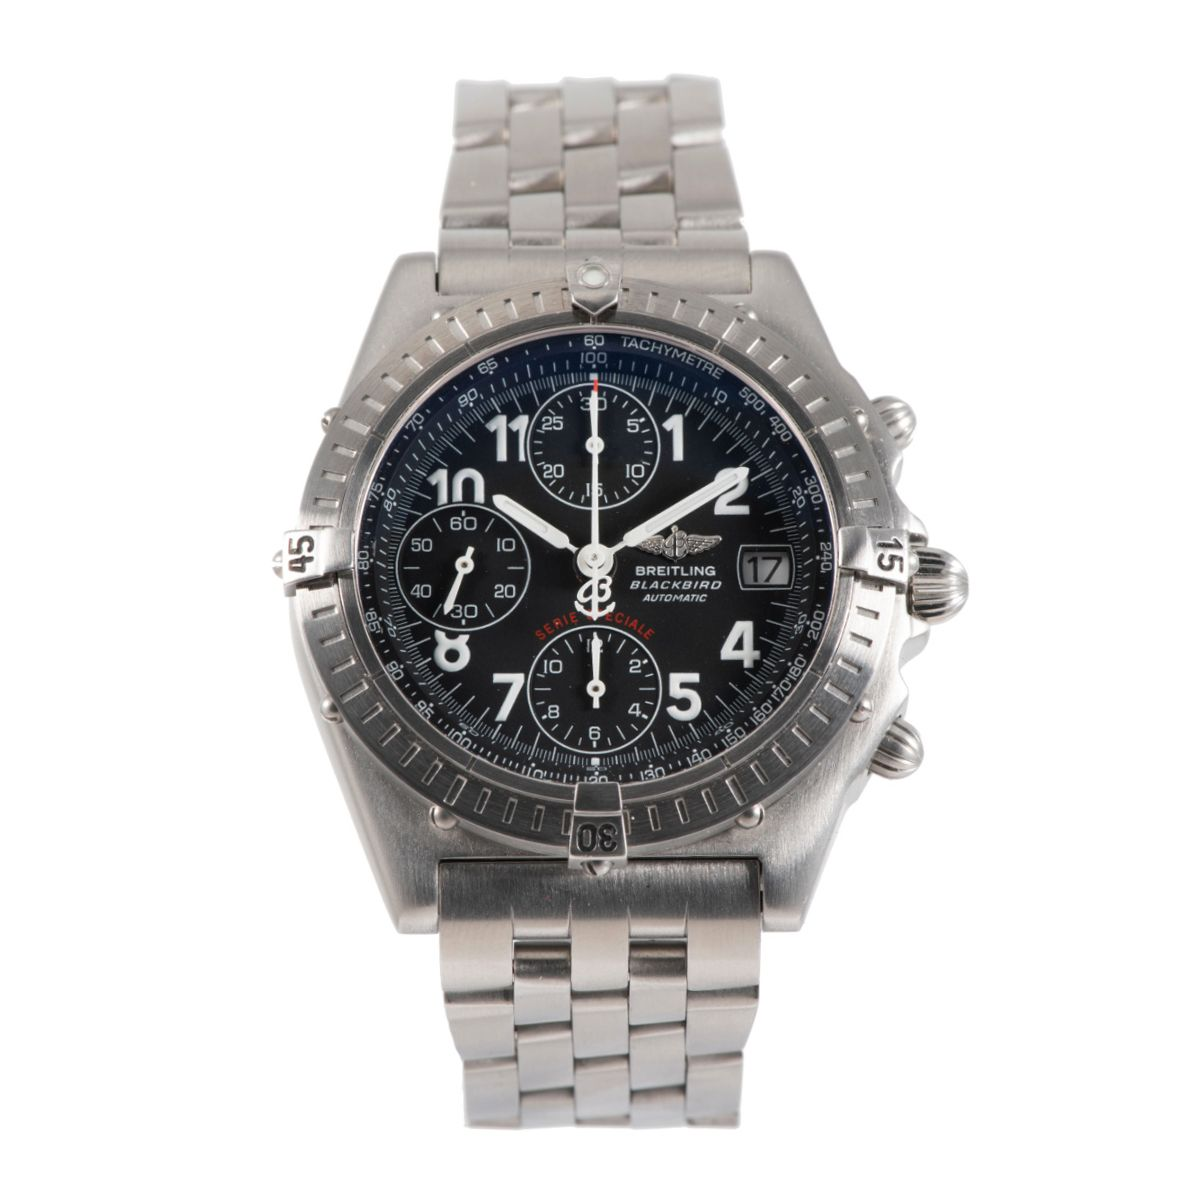 Breitling Blackbird A13350 40mm Mens Watch